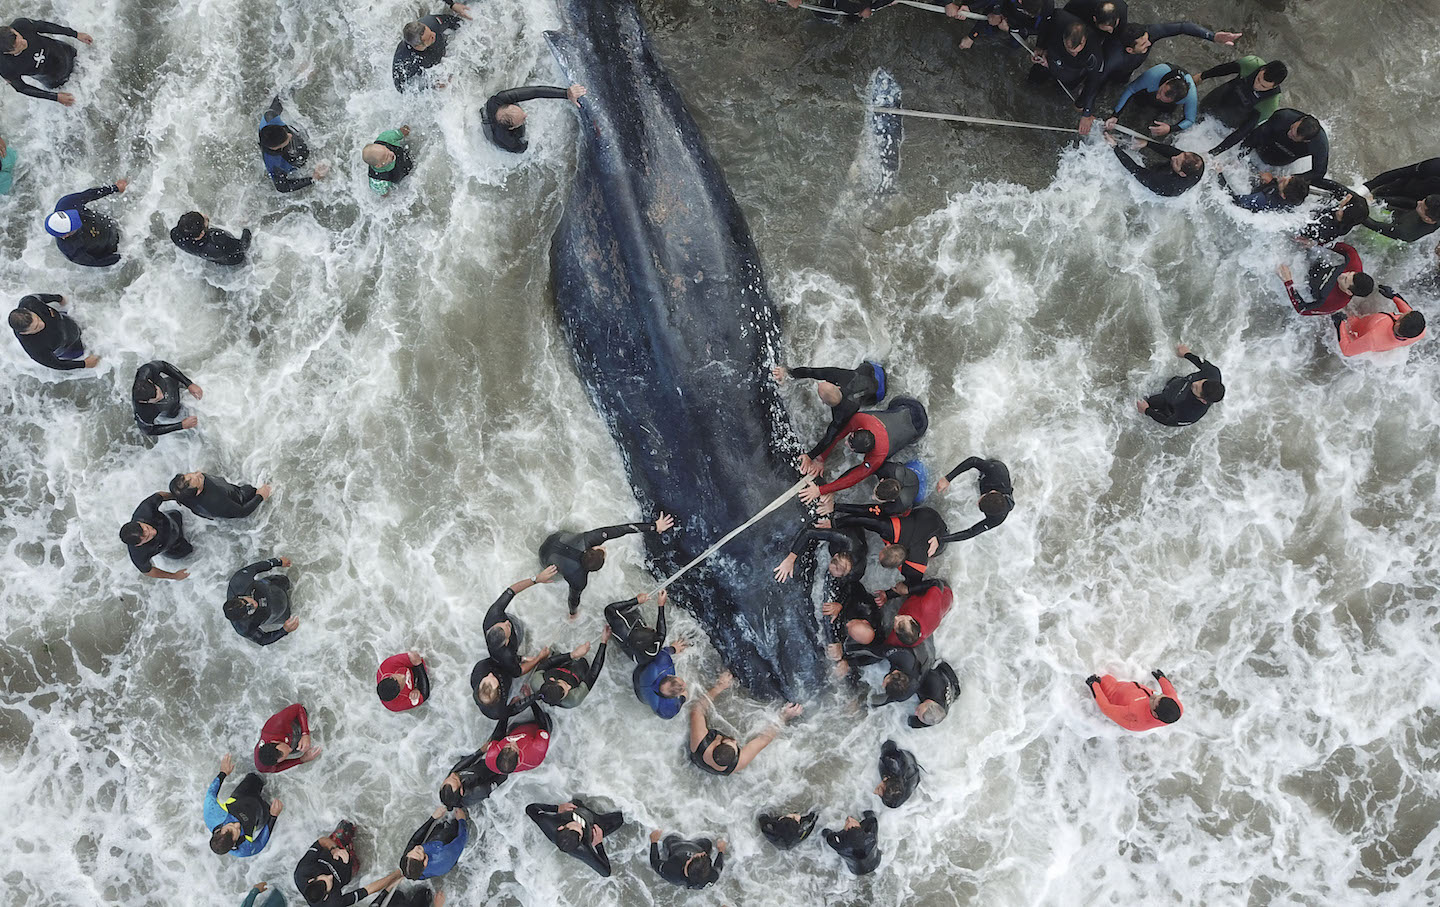 TOPSHOT-ARGENTINA-WHALE-STRANDING